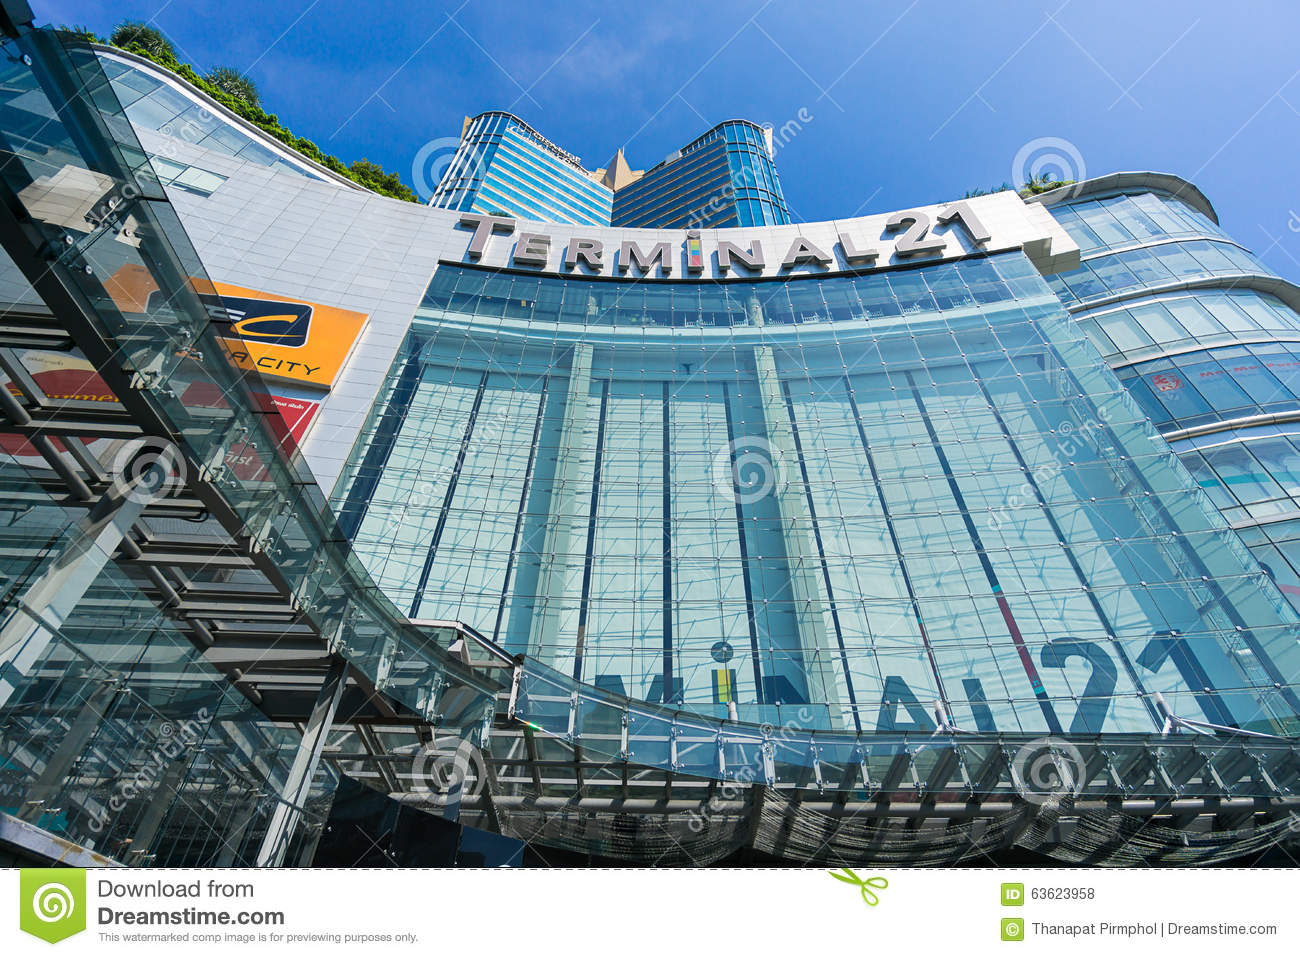 Bangkok, Thailand - 7 December 2015 : The view from below of Terminal 21 (famous shopping mall at the intersection of BTS Asoke an